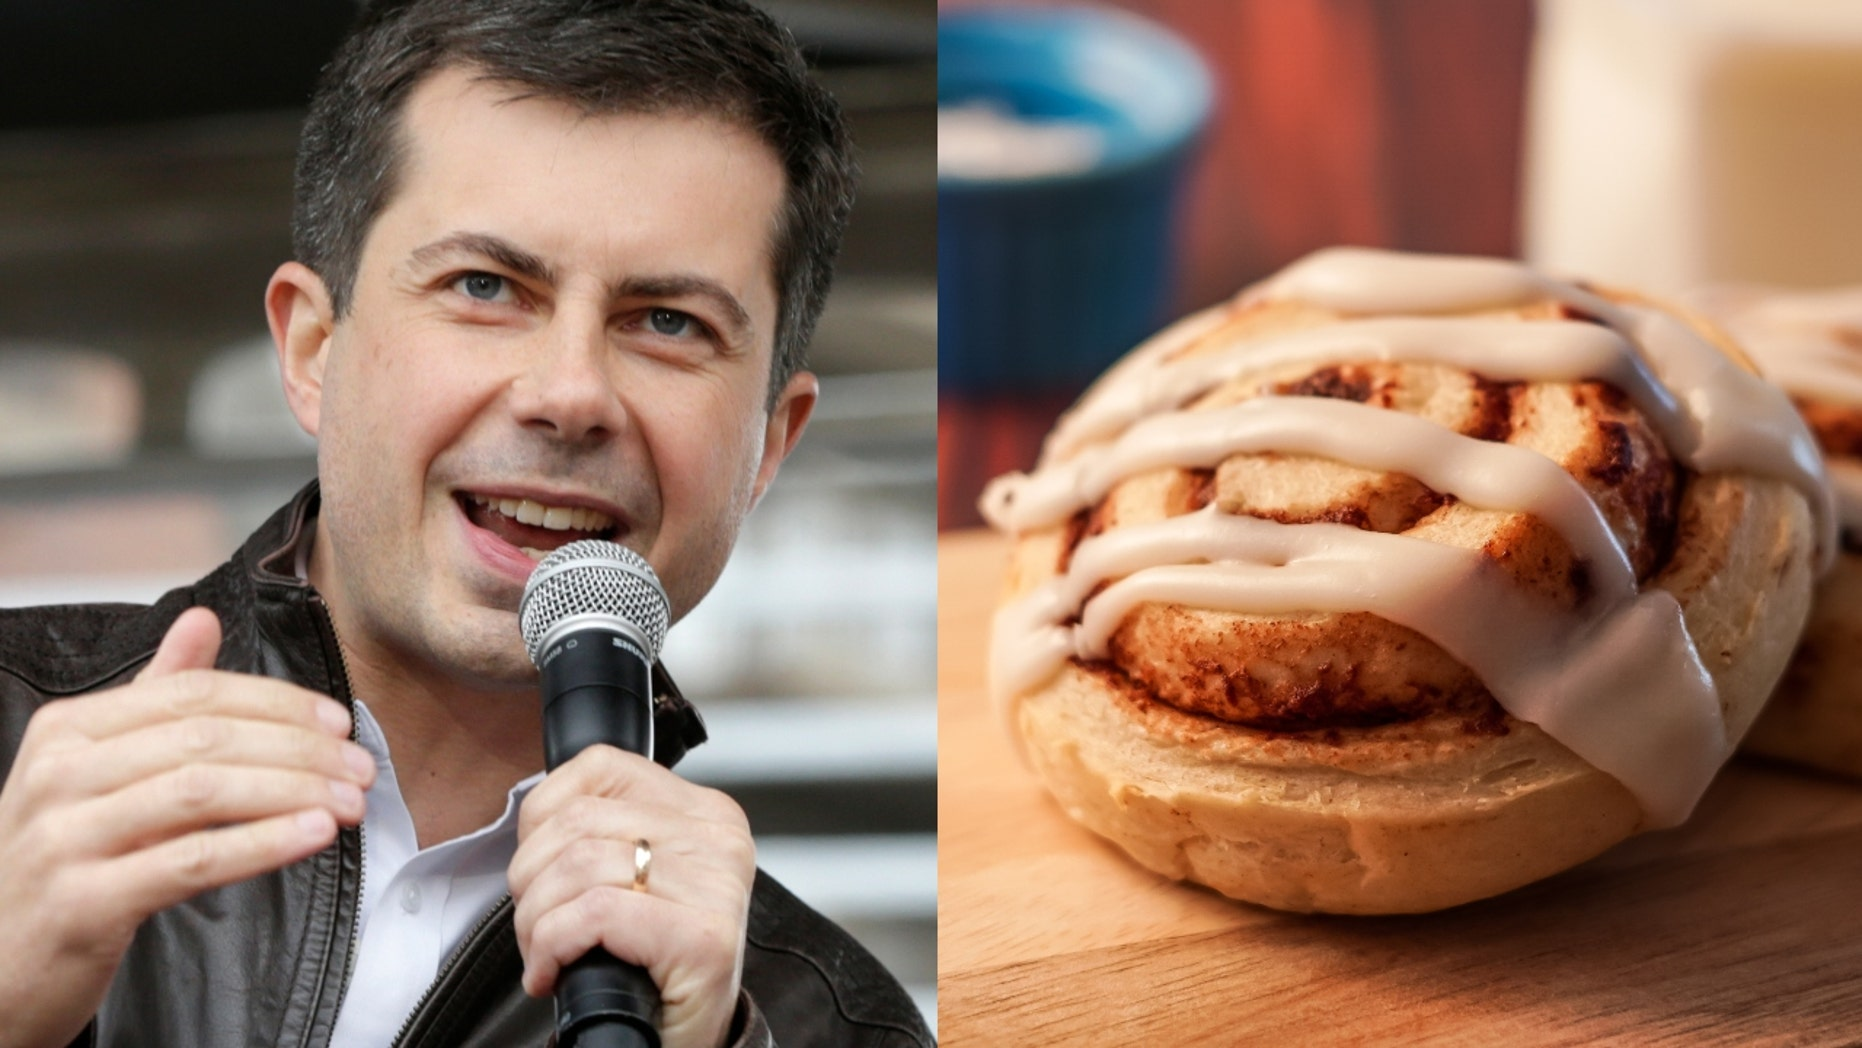 A photograph of Democratic presidential candidate Pete Buttigieg eating a cinnamon roll has become the latest social media craze. (Photo: AP Photo/Nati Harnik/iStock)